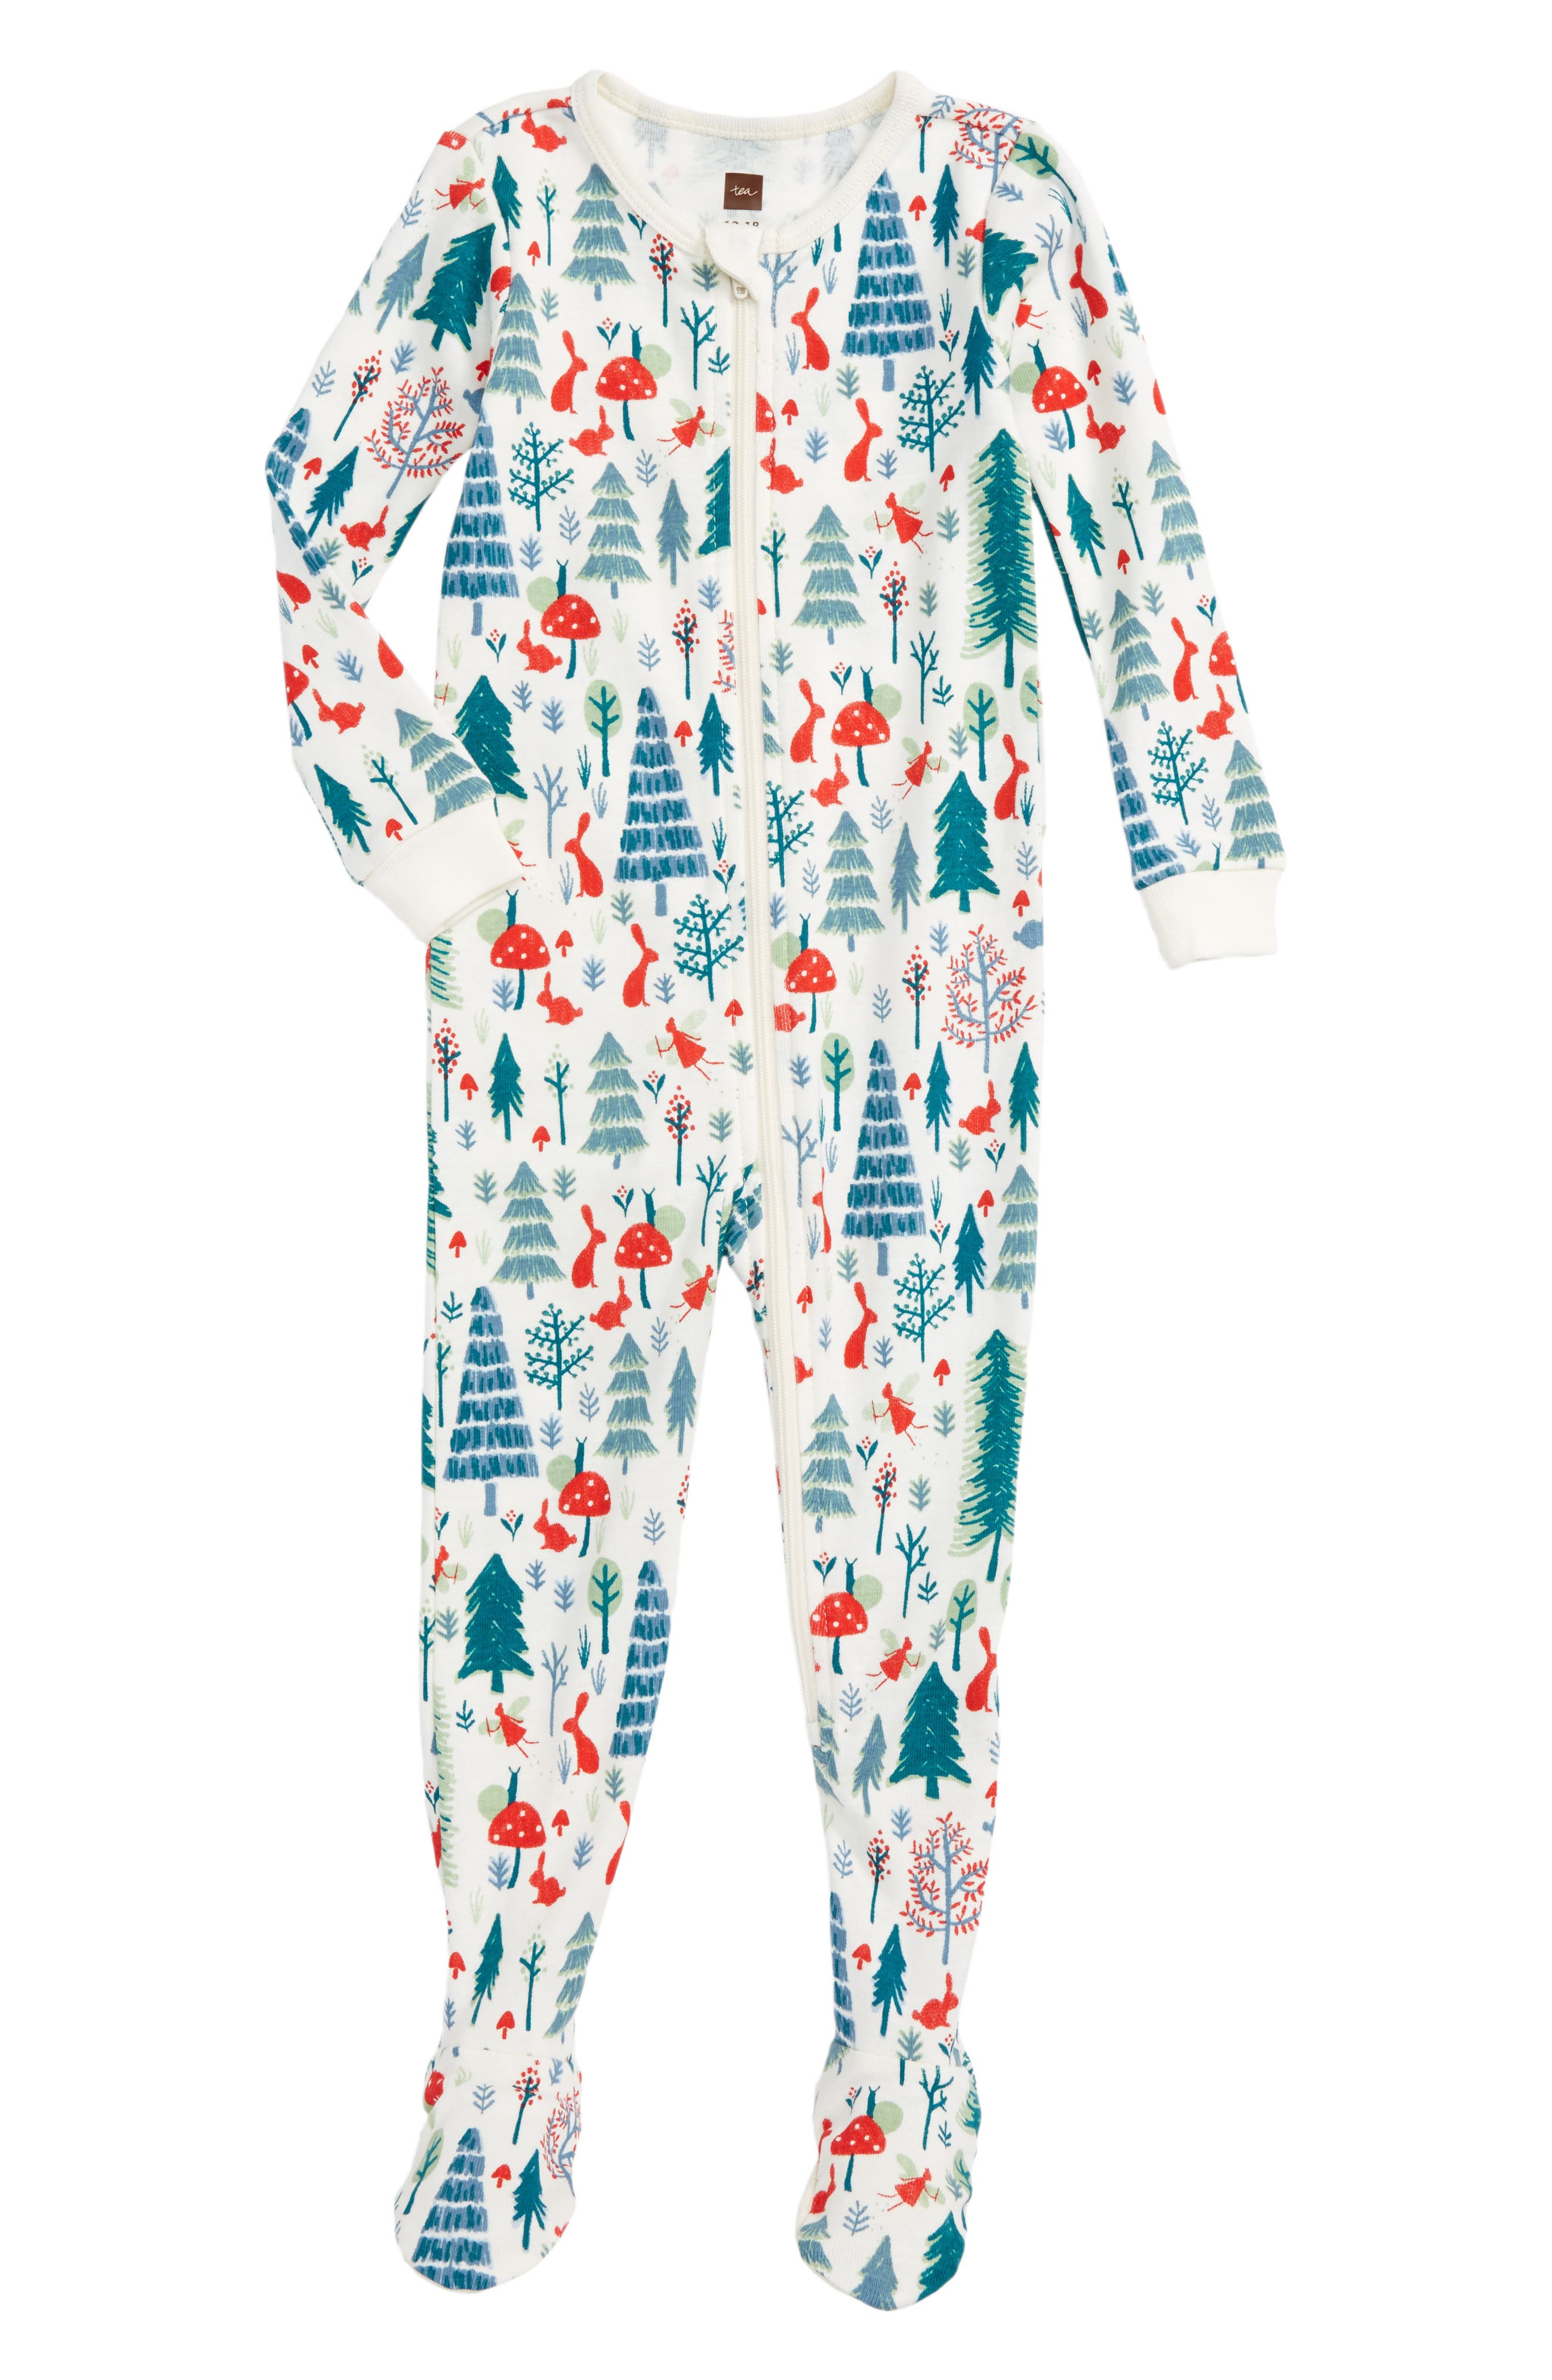 Alternate Image 1 Selected - Tea Collection Maeve Fitted One-Piece Pajamas (Baby Girls)